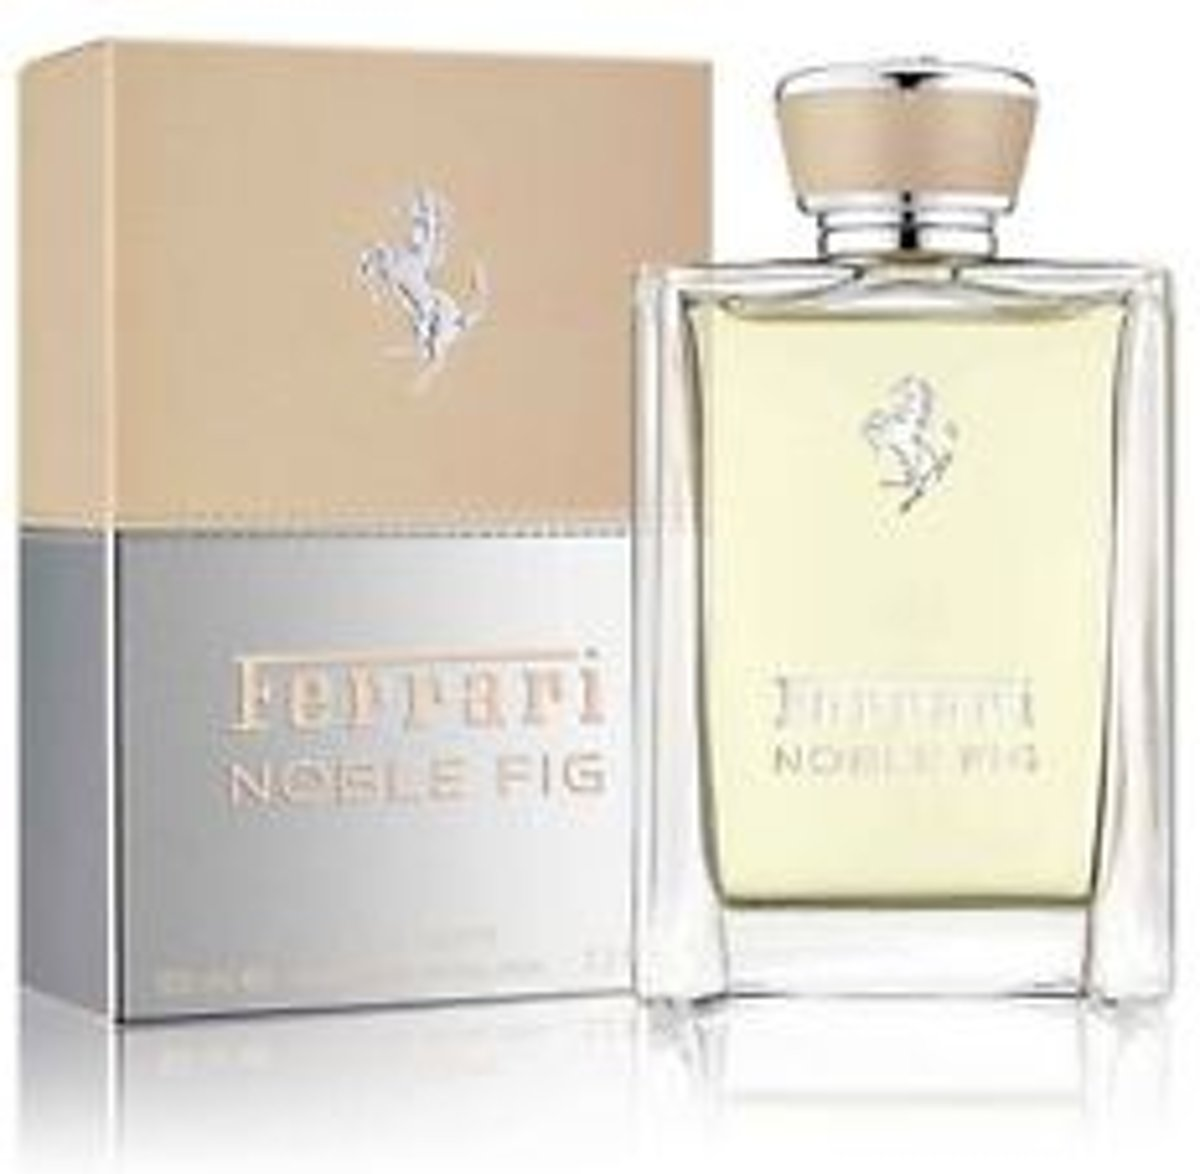 Ferrari Noble Fig eau de toilette spray 100 ml